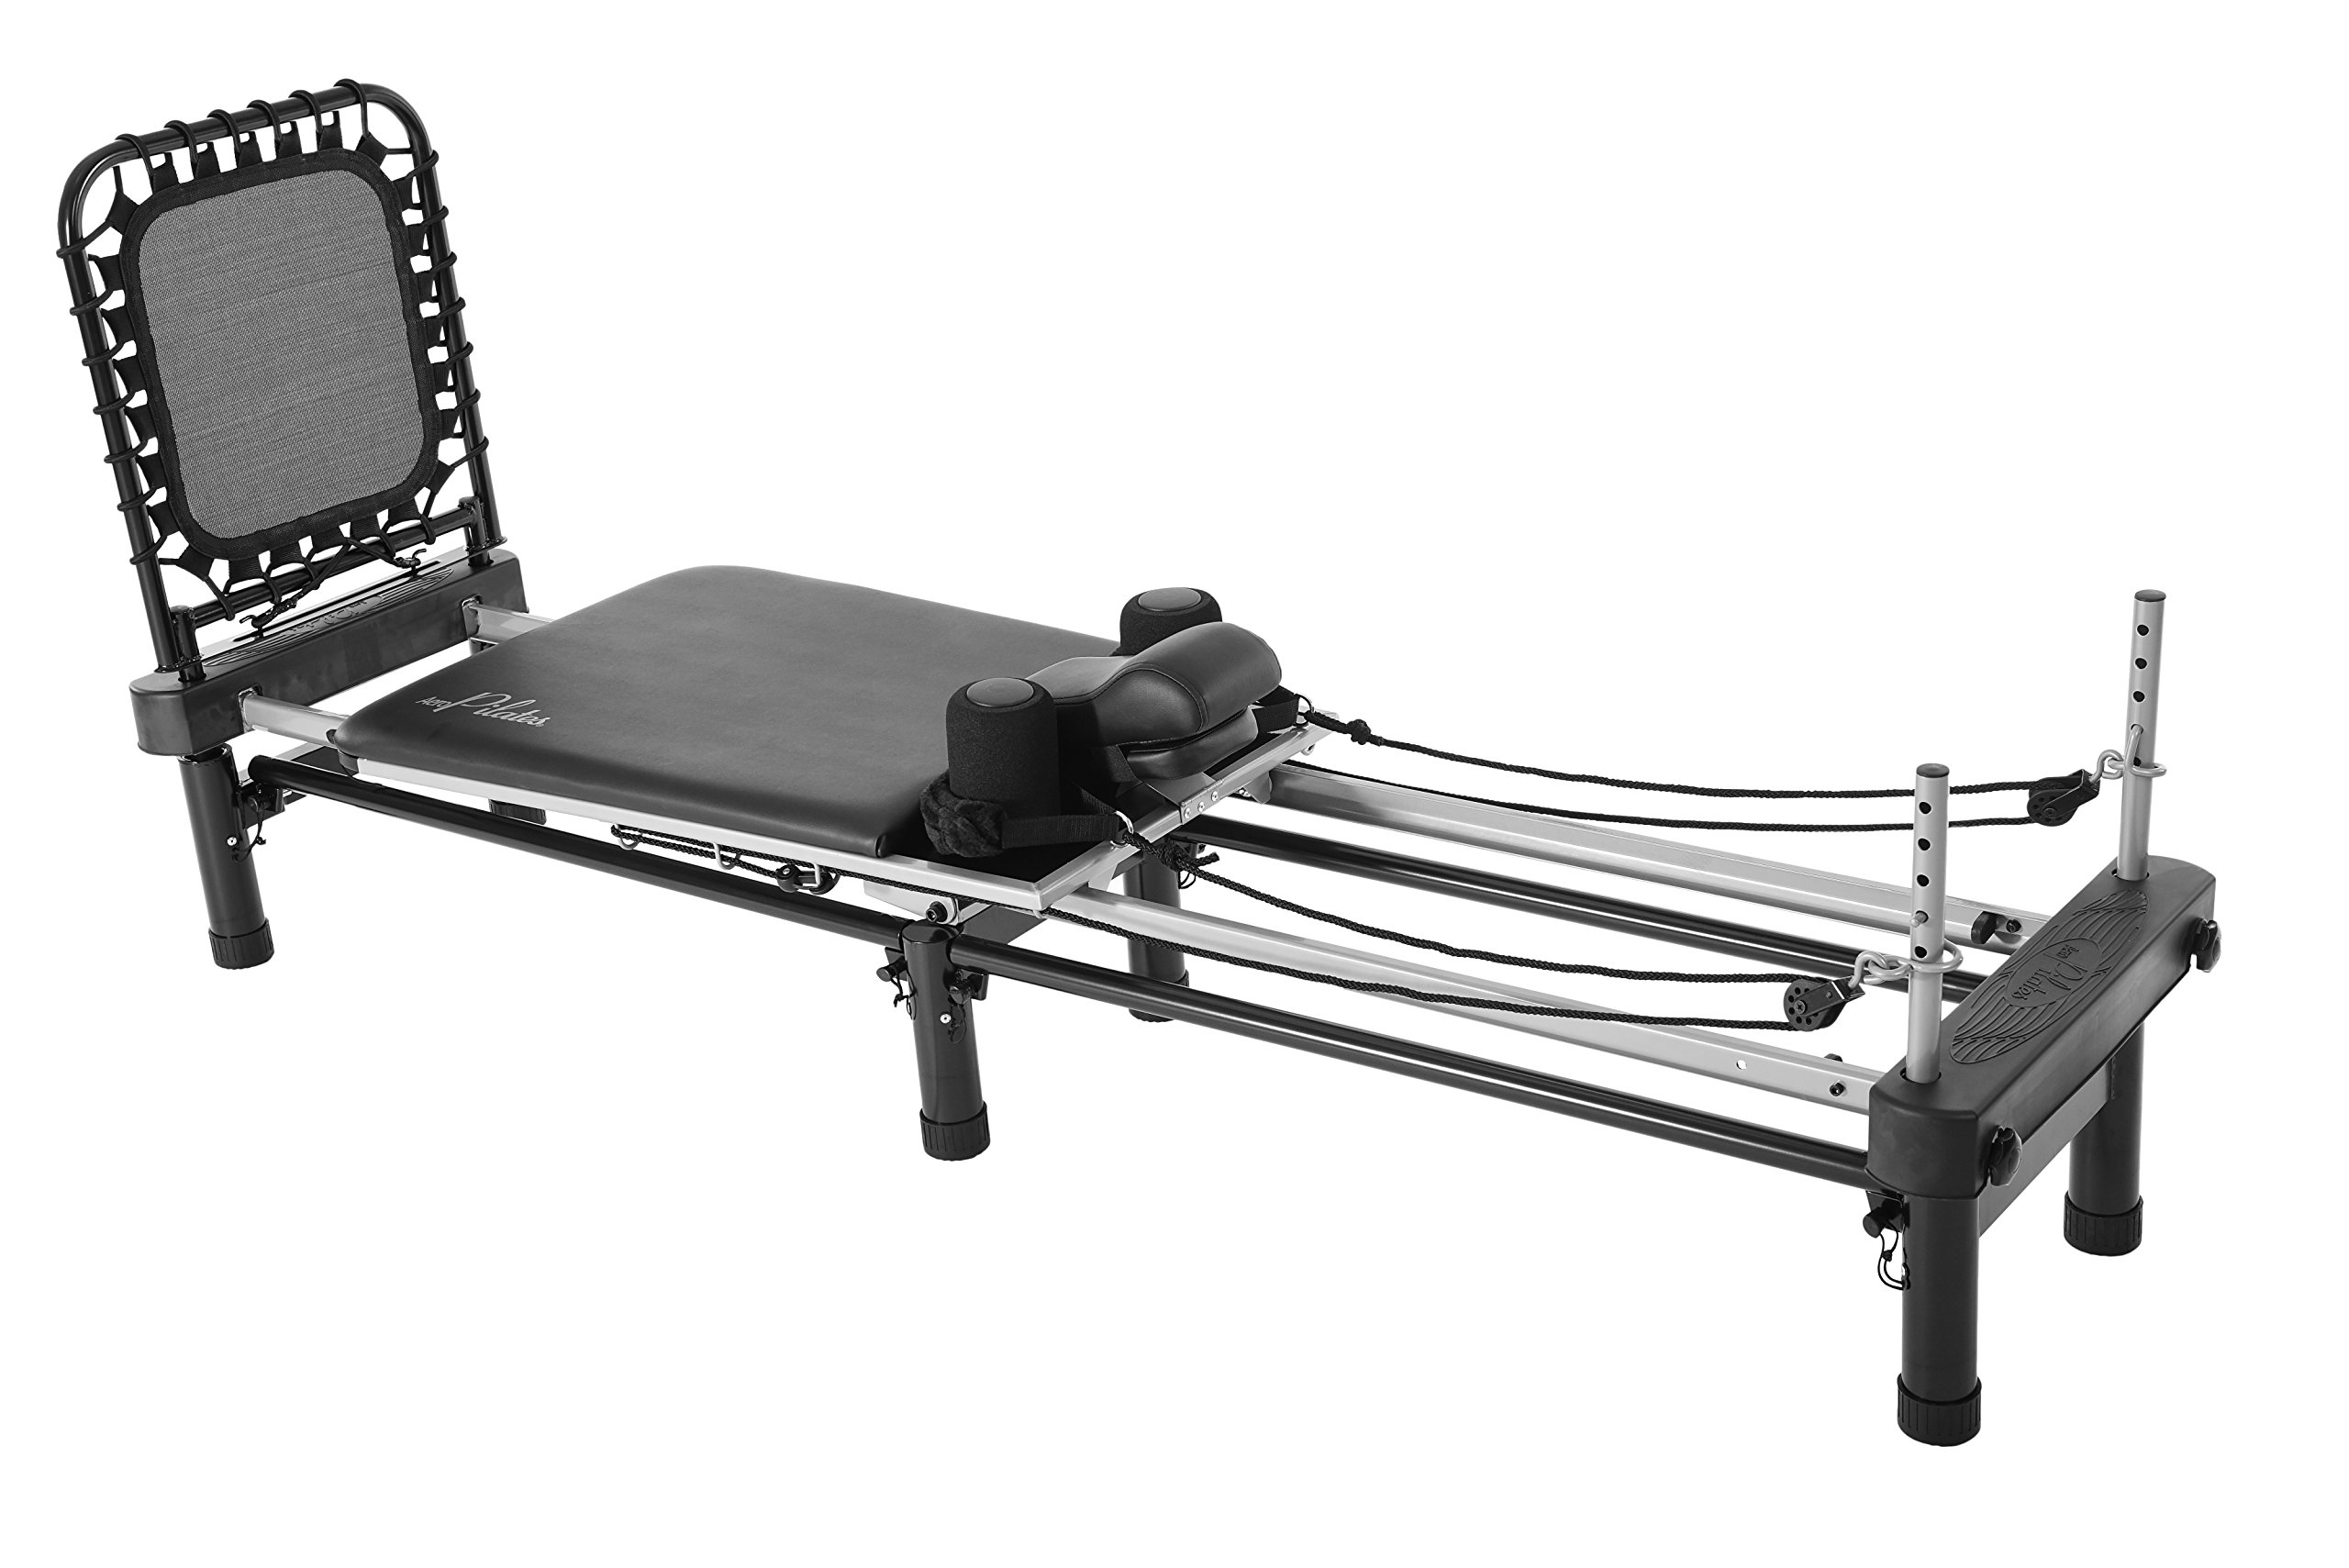 Stamina AeroPilates 700 Premier Reformer with Stand, Cardio Rebounder, Neck Pillow and DVDs by Stamina